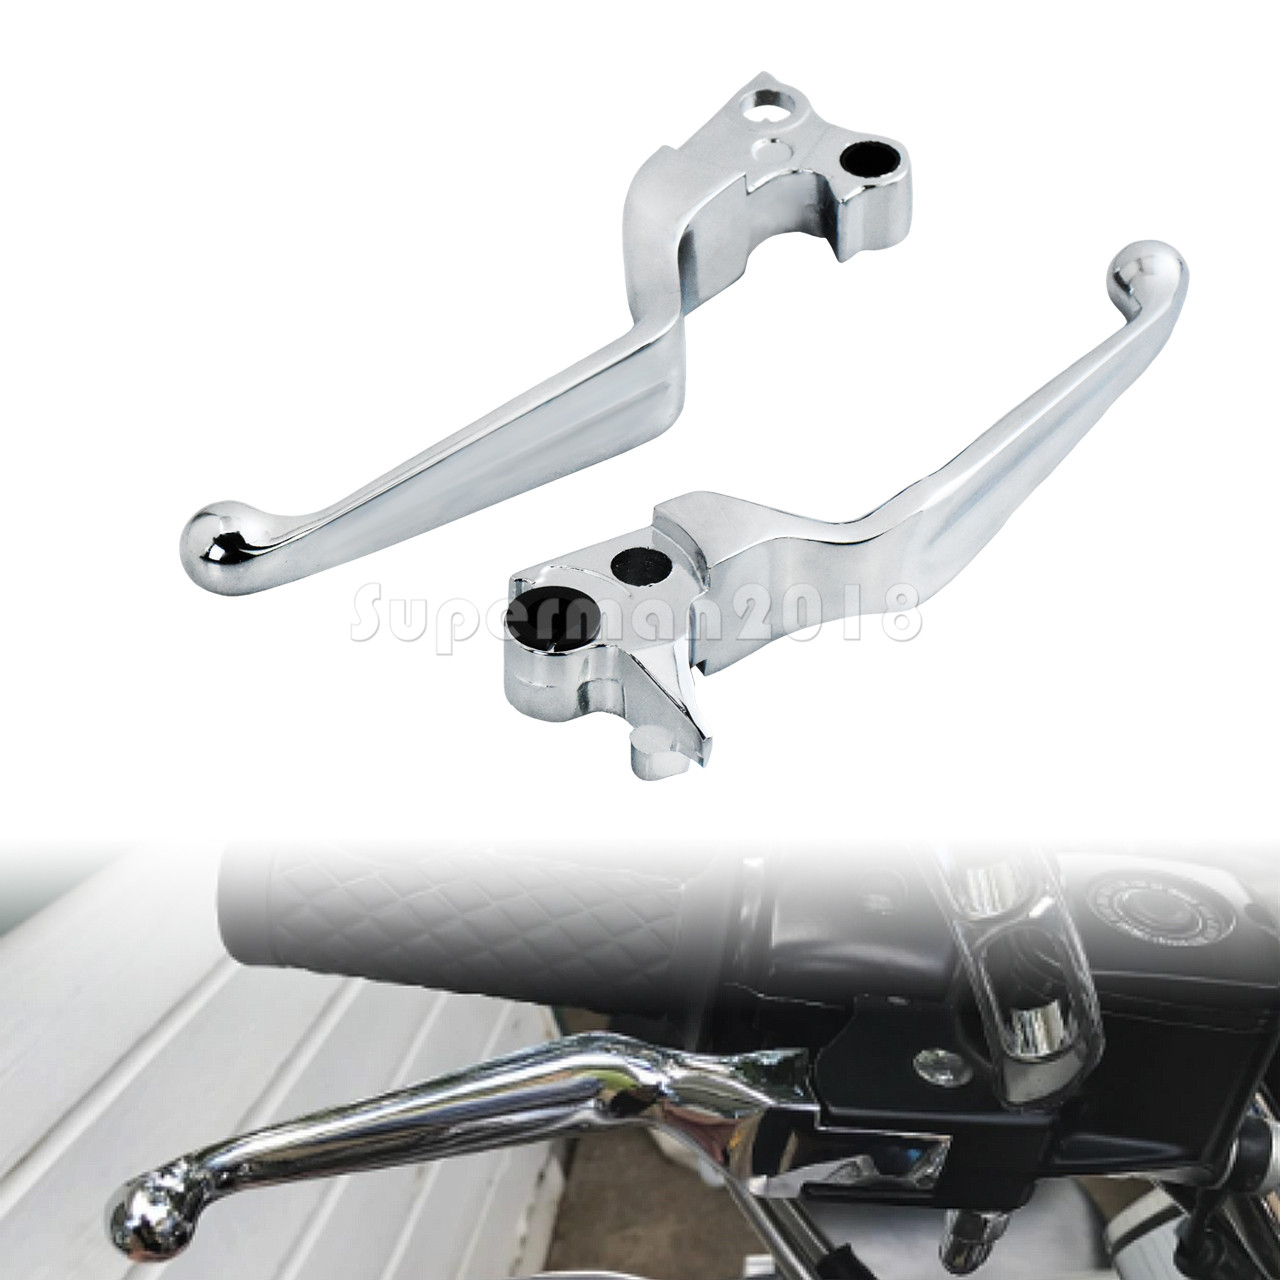 CNC Clutch Brake Lever for harley softail fatboy 96-14 Touring Sportster 96-03